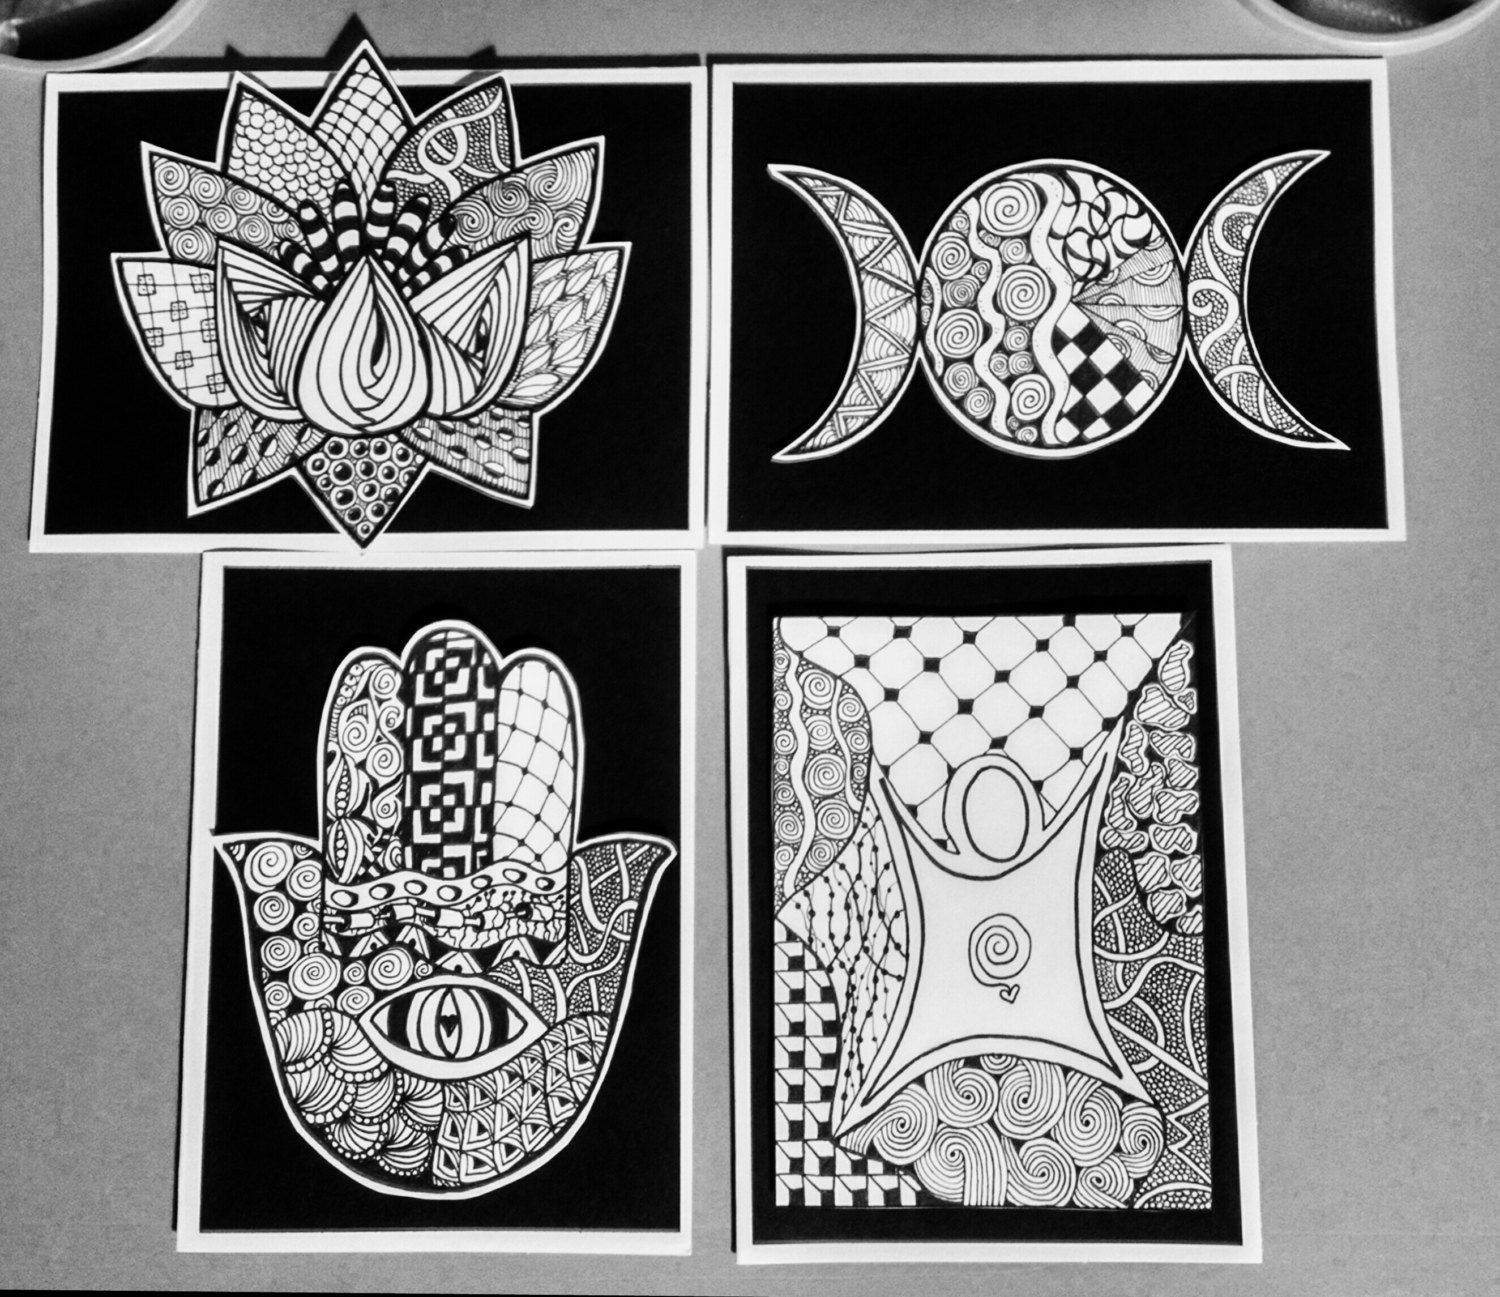 New age inspired zentangle greeting cards hand crafted unique new age inspired zentangle greeting cards hand crafted unique no two ever alike blank inside for your own message kristyandbryce Image collections